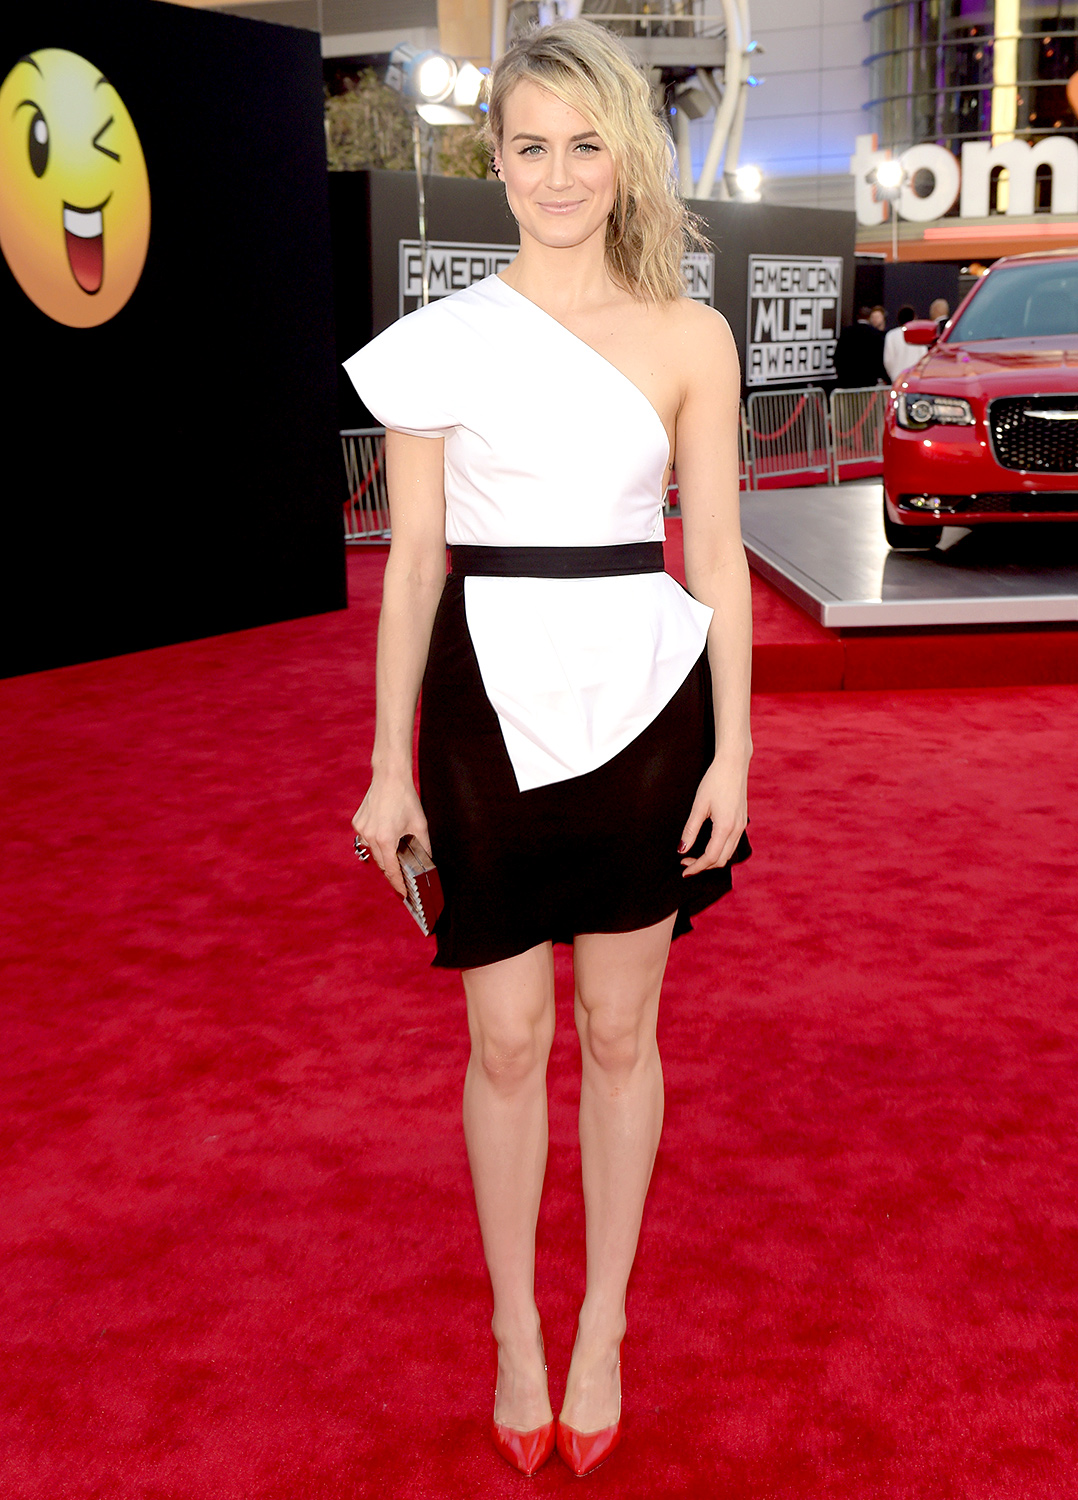 taylor-schilling-vionnet-2014-american-music-awards/